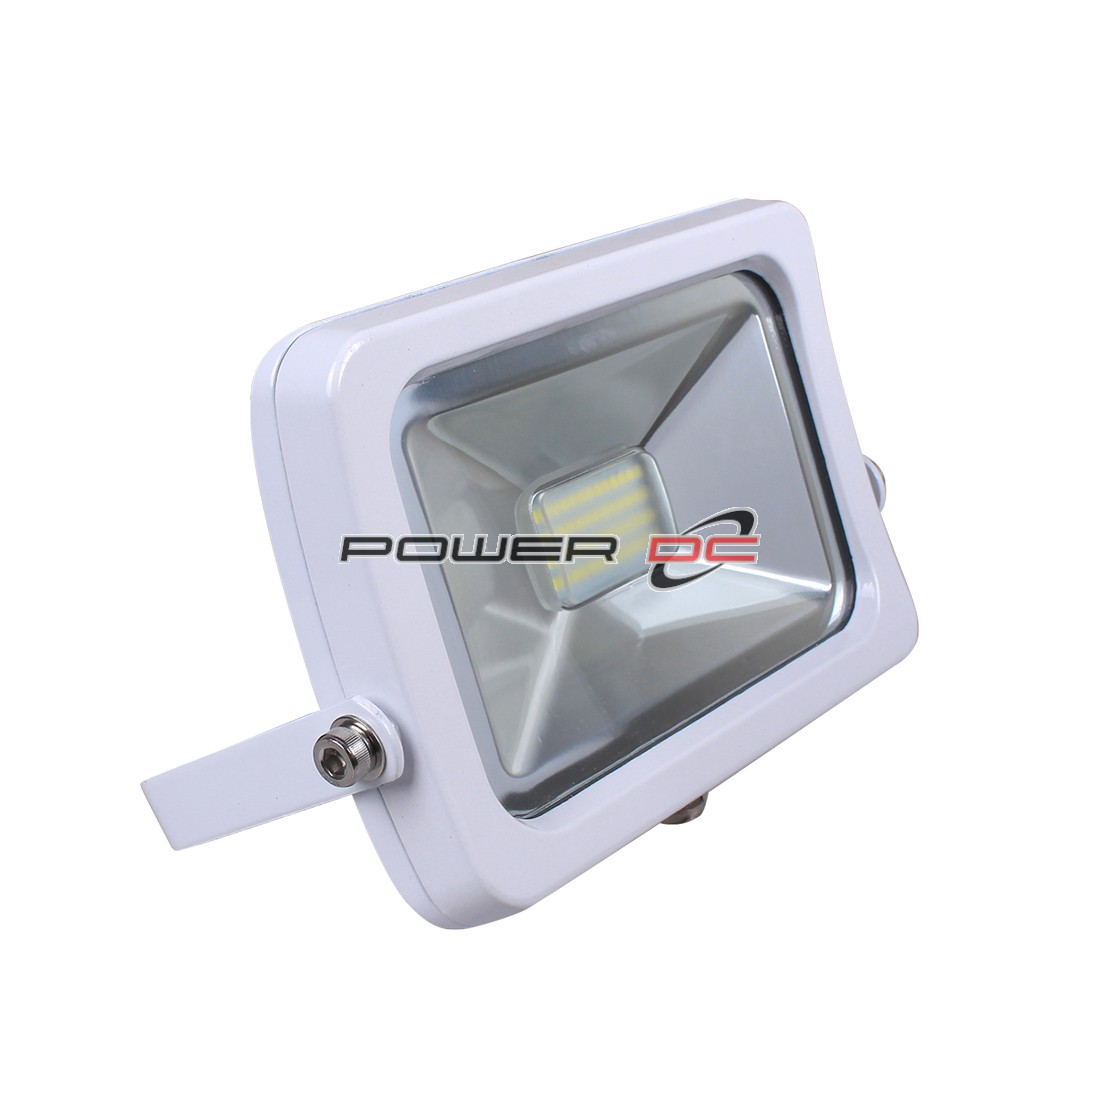 ULTRACHARGE WALL MOUNT LED FLOOD LIGHT 30WATT WHITE